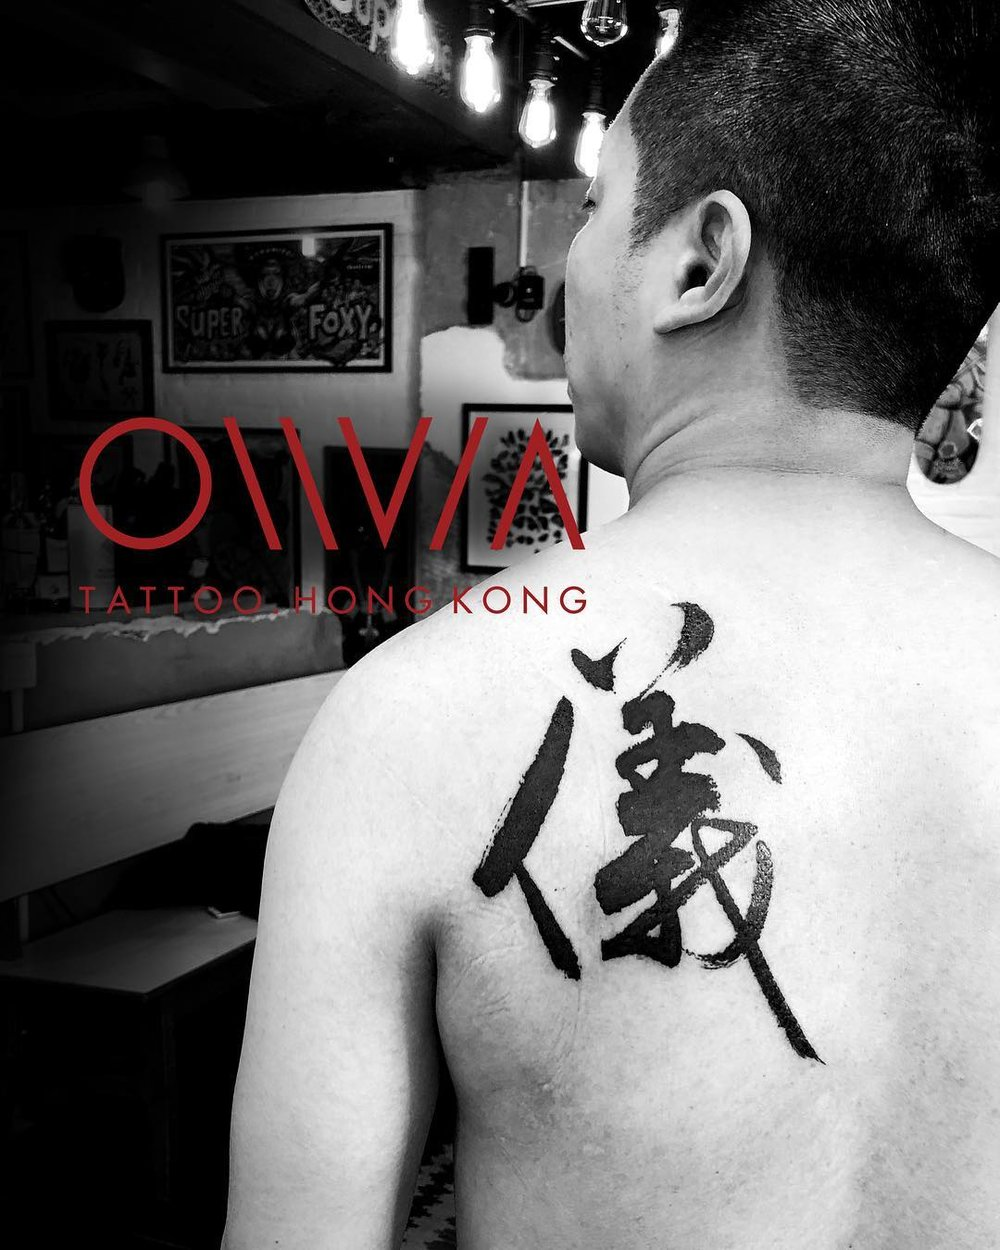 2018-fridays-tattoo-hong-kong-olivia-chinese-calligraphy-3.jpg